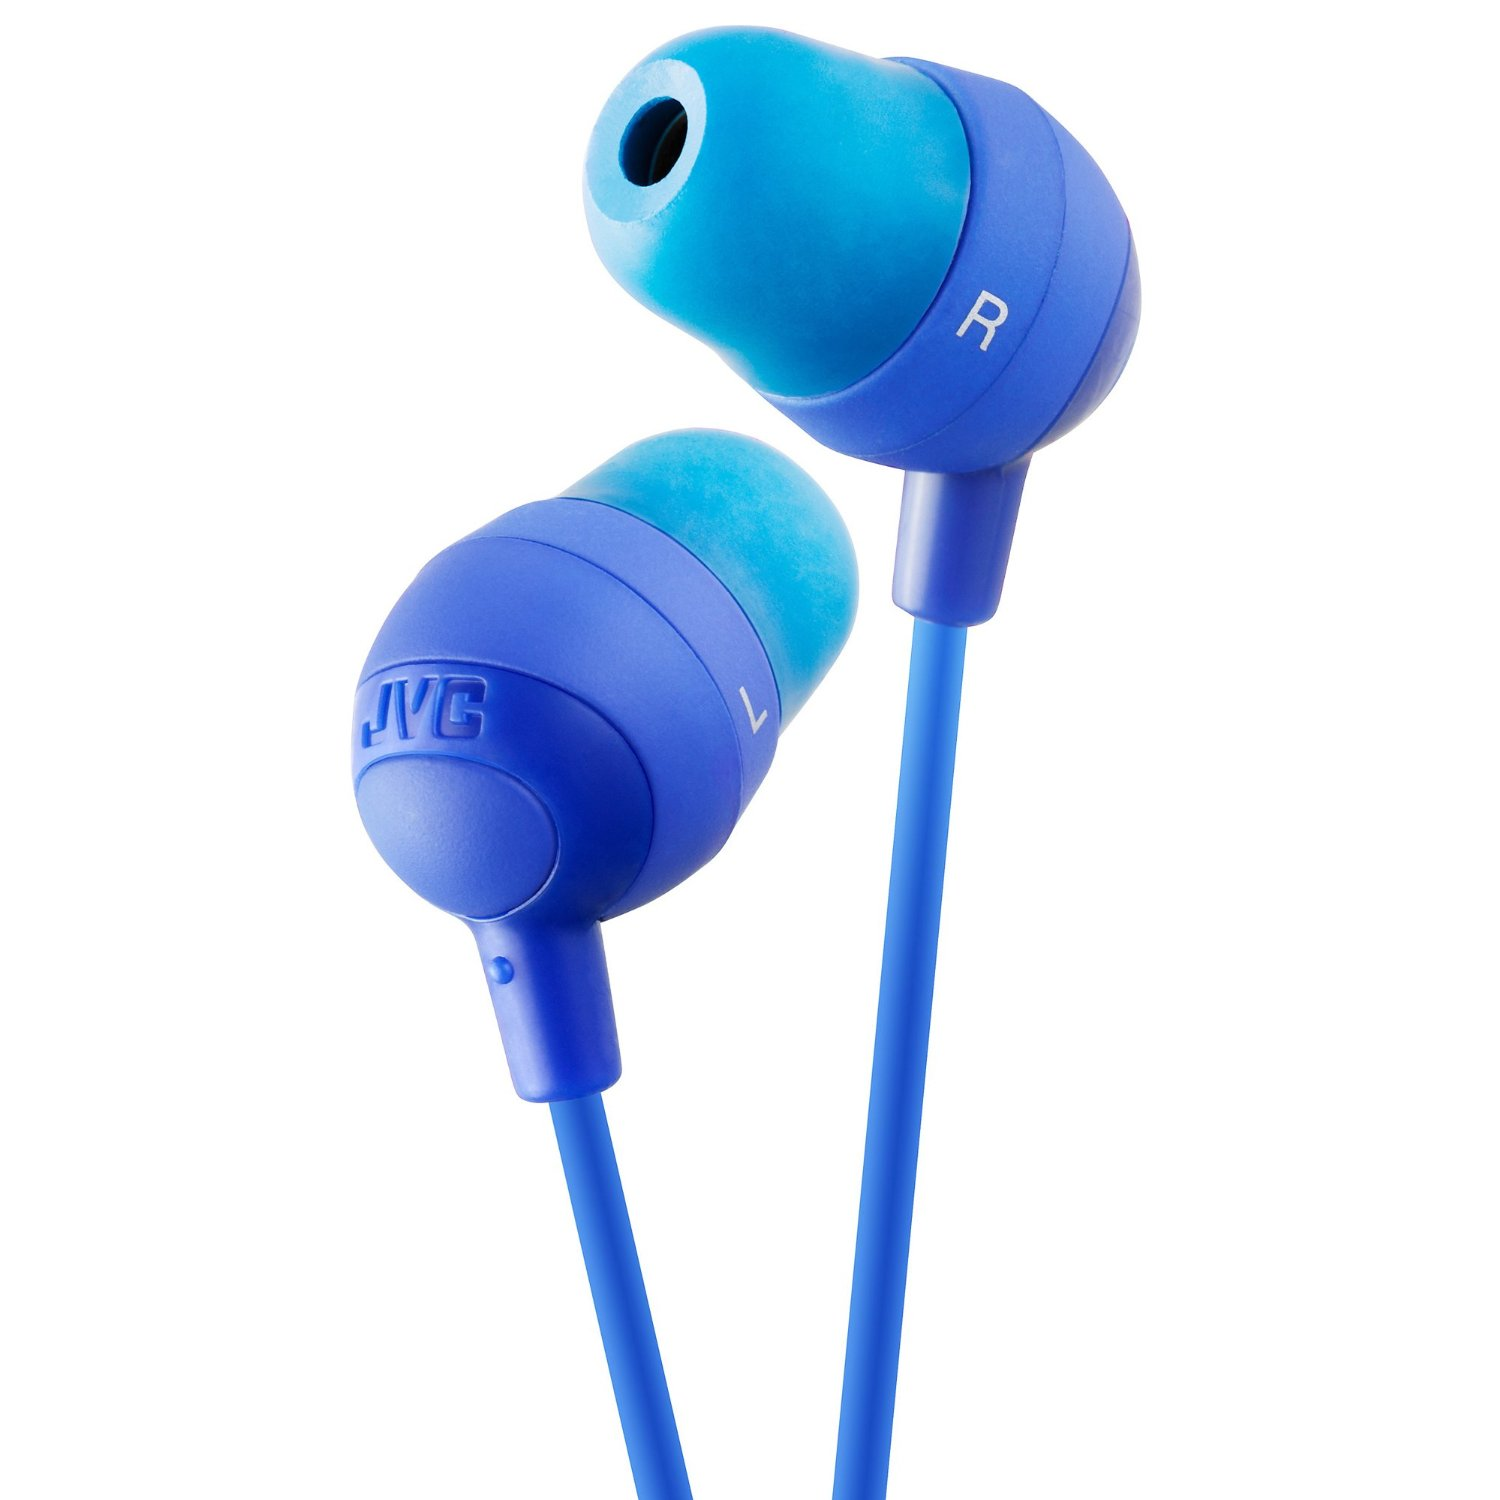 Marshmallow earbuds green - low earbuds micro